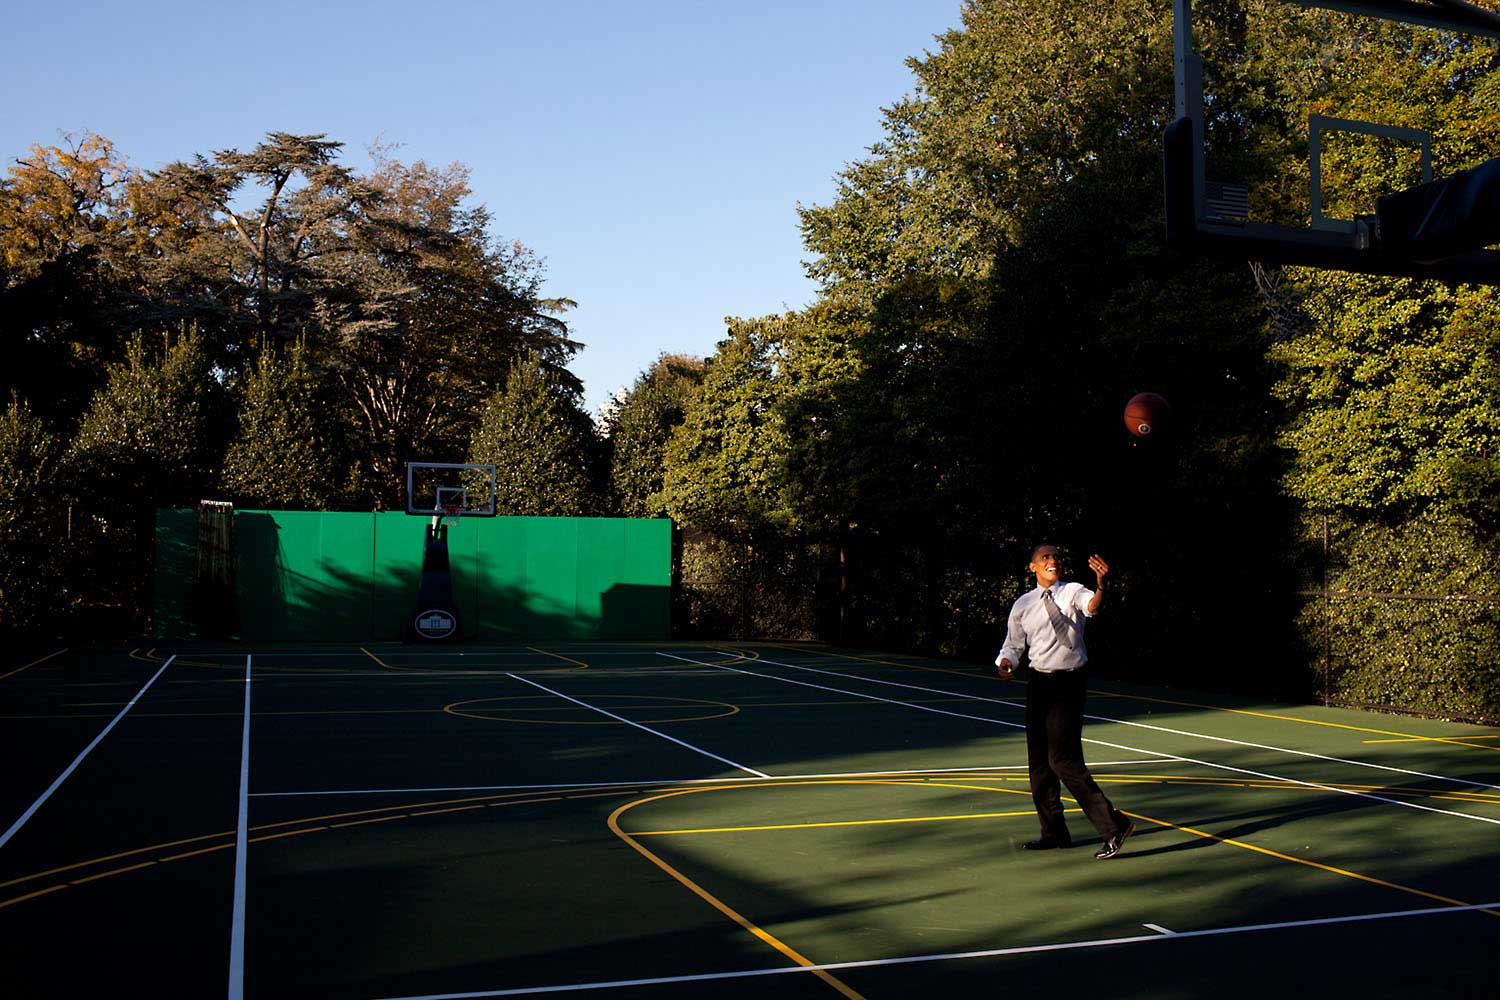 After a day filled with meetings, the President headed to the White House basketball court to shoot a few baskets with his personal aide Reggie Love, Oct. 13, 2010. Before heading back to the Oval, he flipped the ball towards the rim just where the afternoon light was falling.